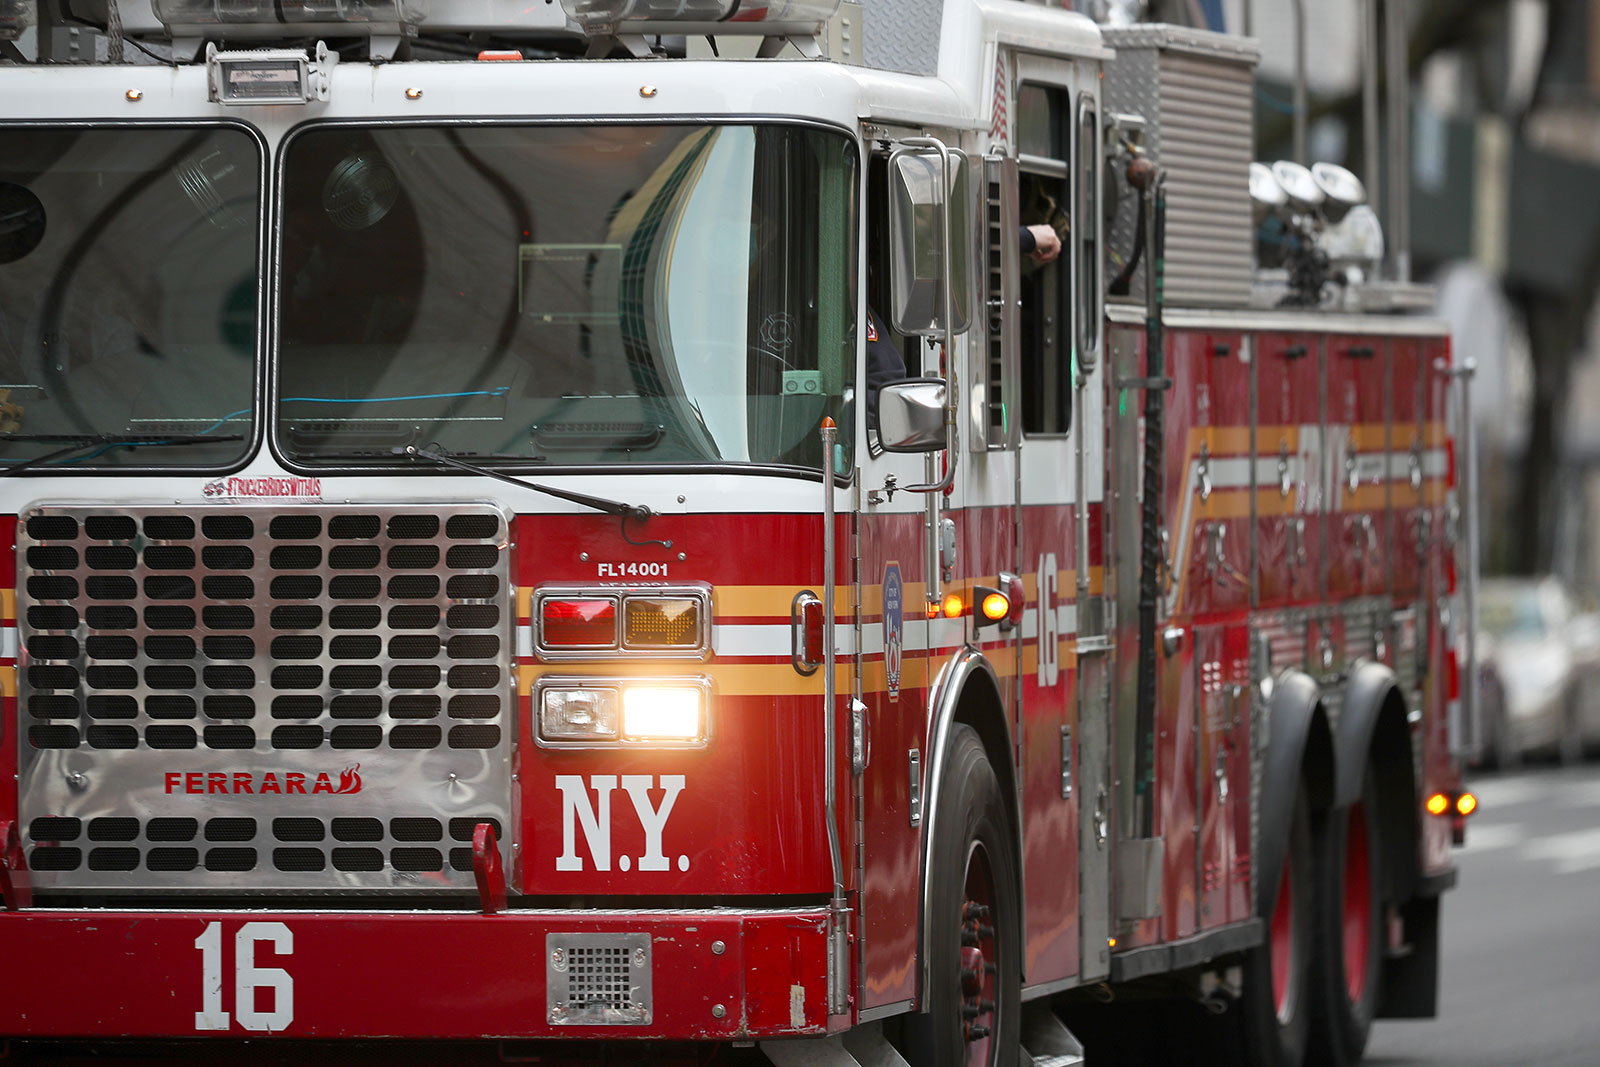 A fire truck is seen as firefighters and New Yorkers cheered for healthcare workers in New York City on April 12.